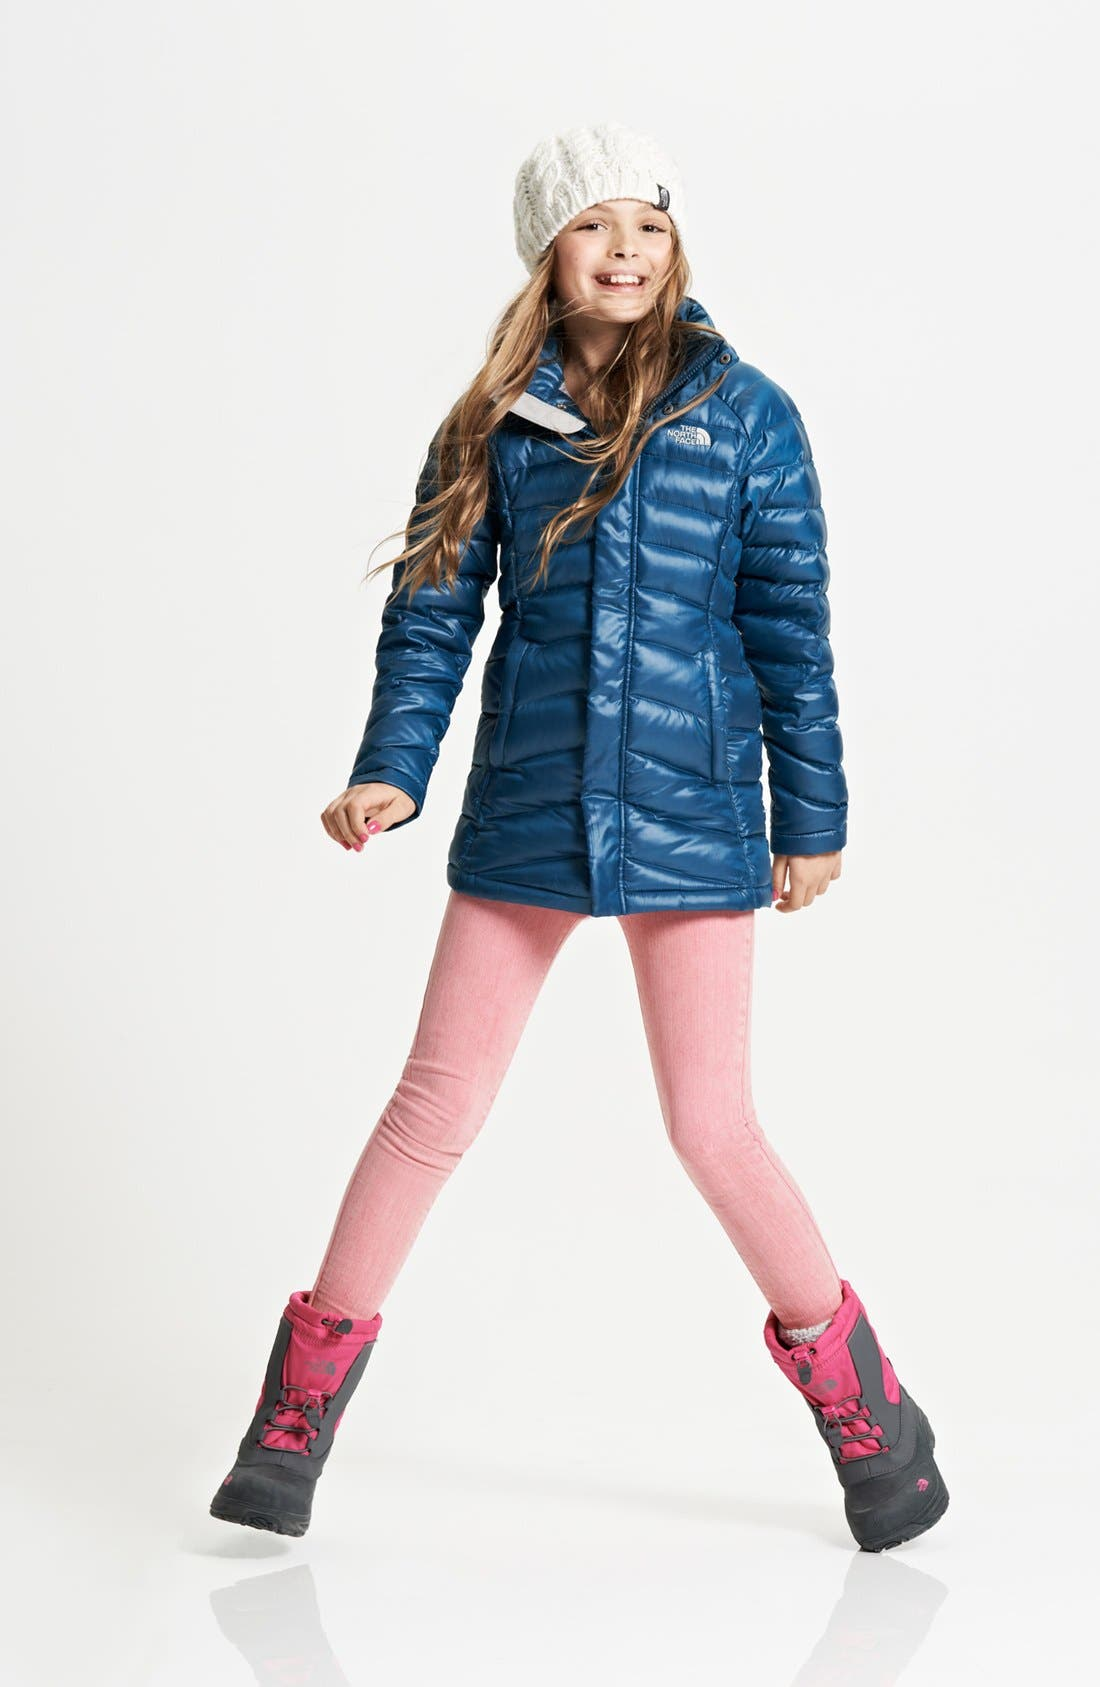 Alternate Image 1 Selected - The North Face Down Jacket, Beanie & Joe's Jeggings (Big Girls)